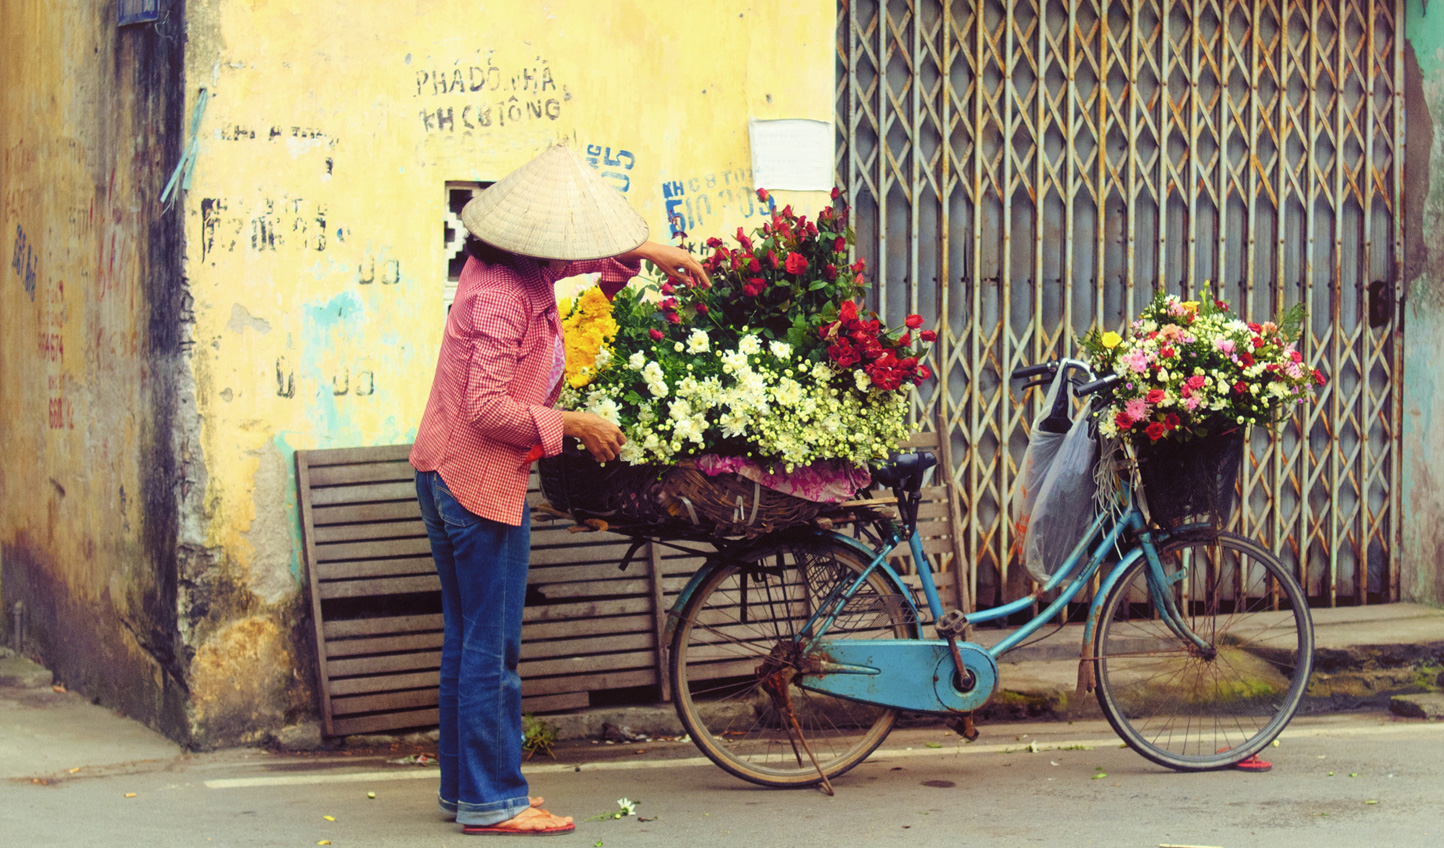 A flower vendor in the streets of Hanoi